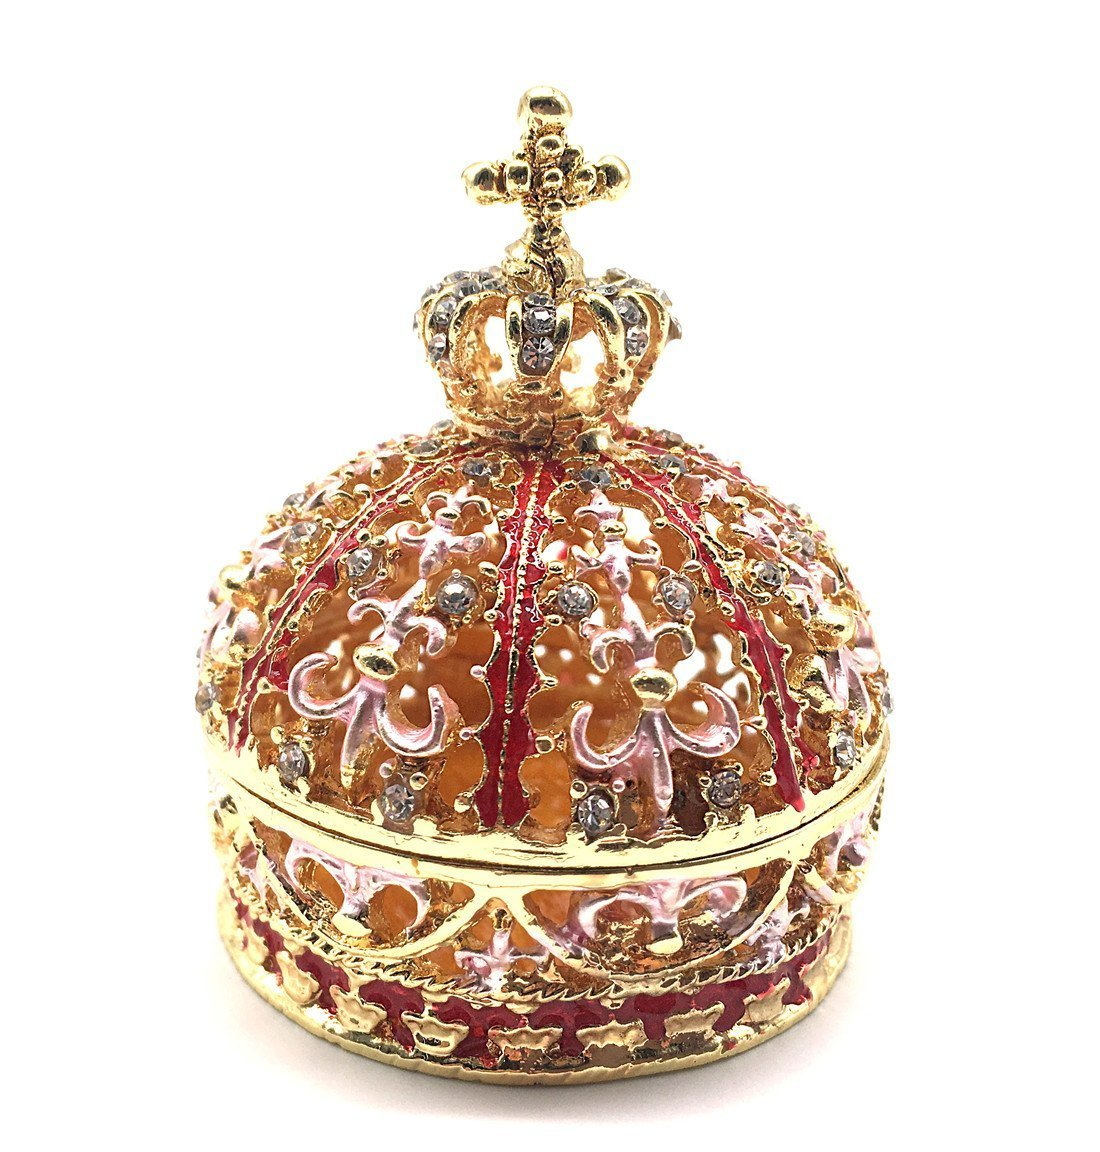 Crown Trinket Box Ring Holder, Pewter Trinket Dish Figurines Collectible Gifts